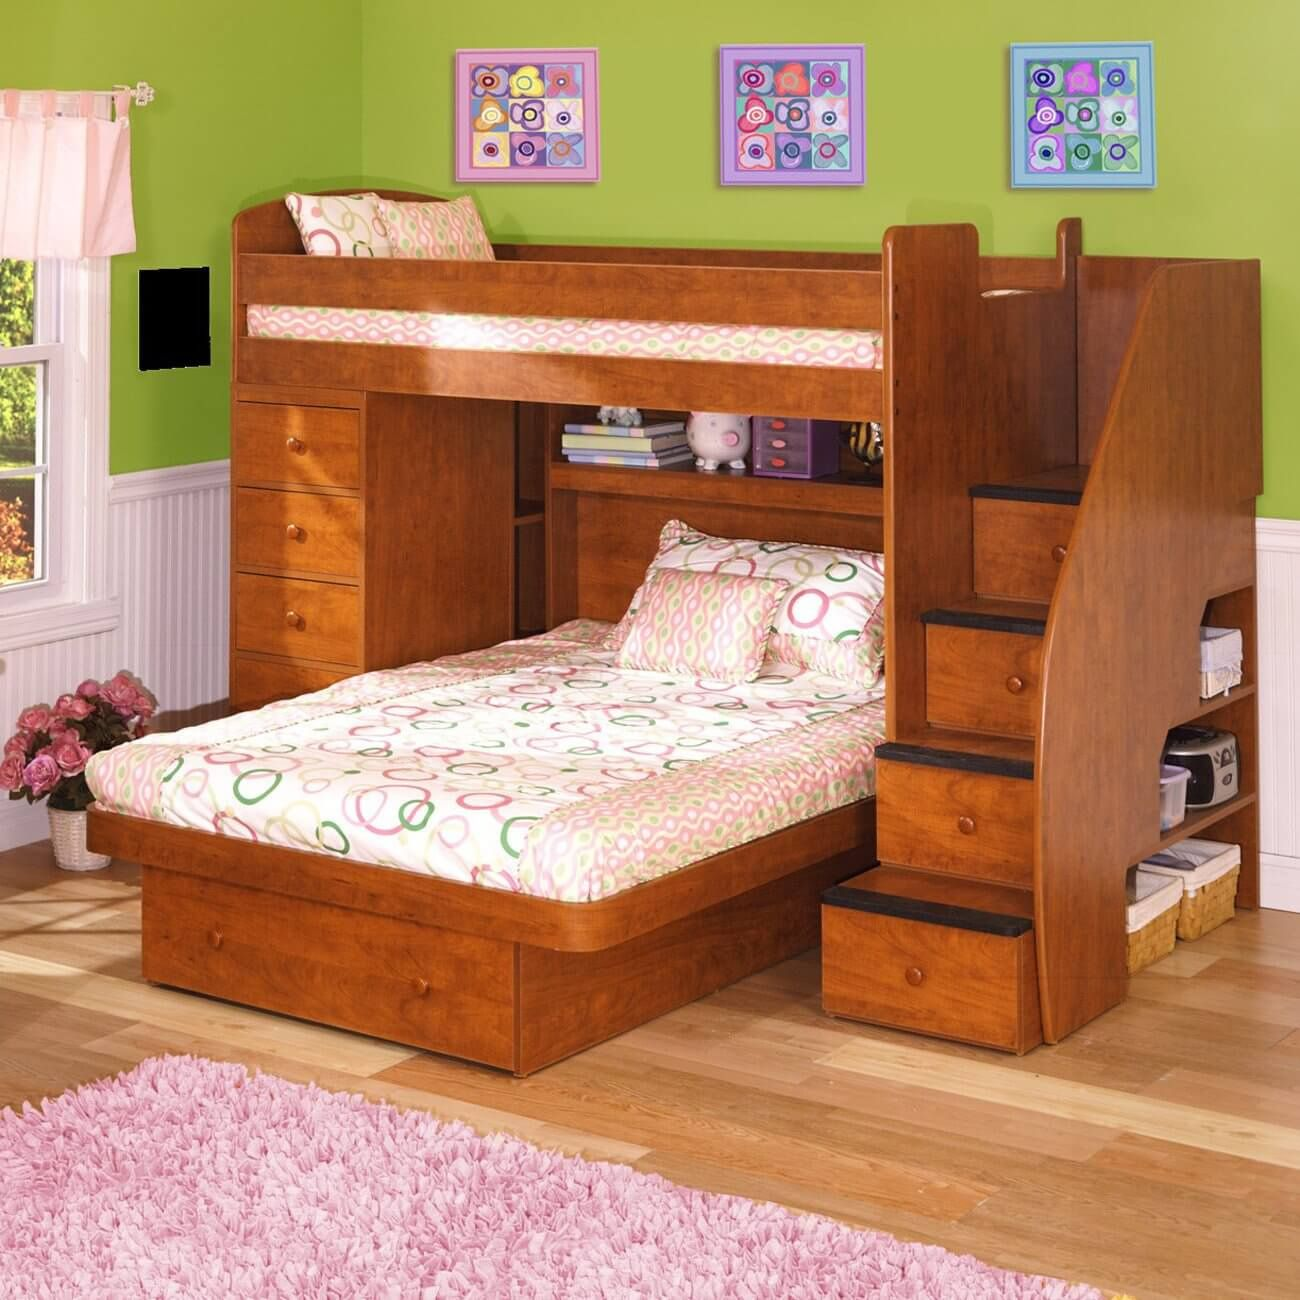 Twin loft bed craigslist  Bunk Bed with Full Bed  Best Paint for Interior Check more at